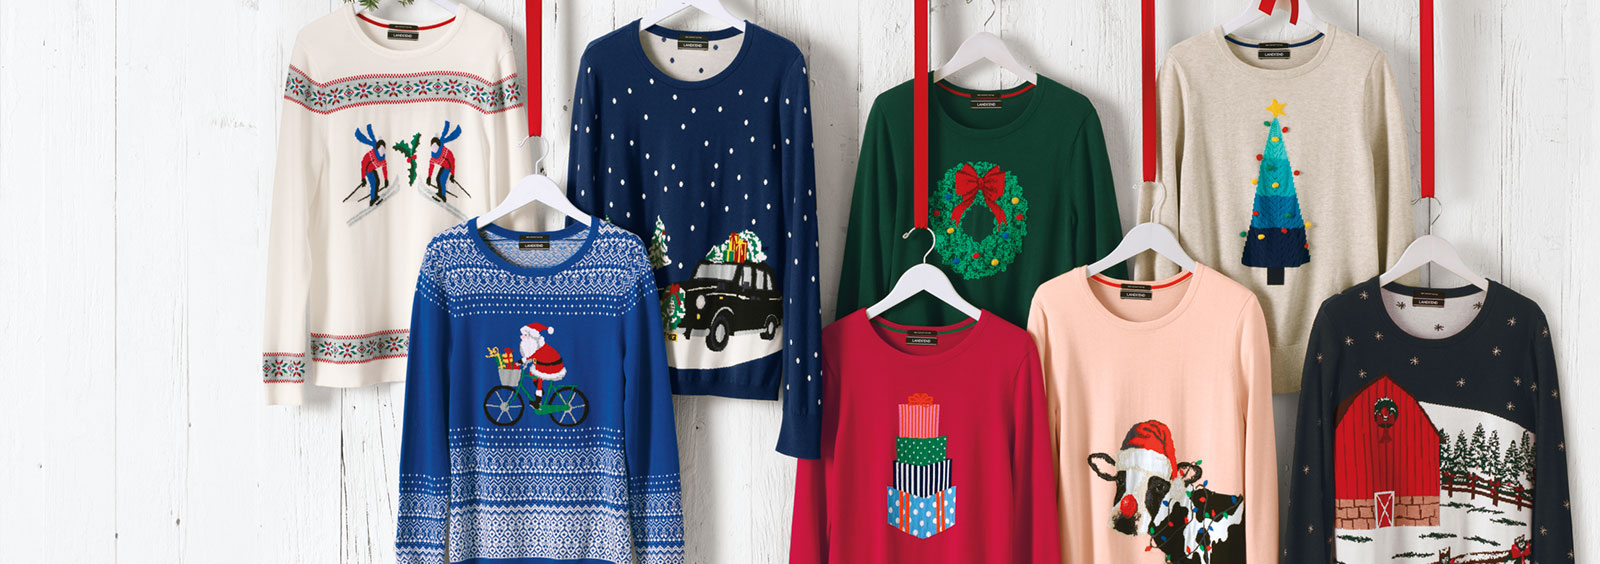 Christmas Sweaters - How To Wear At Work | Lands' End